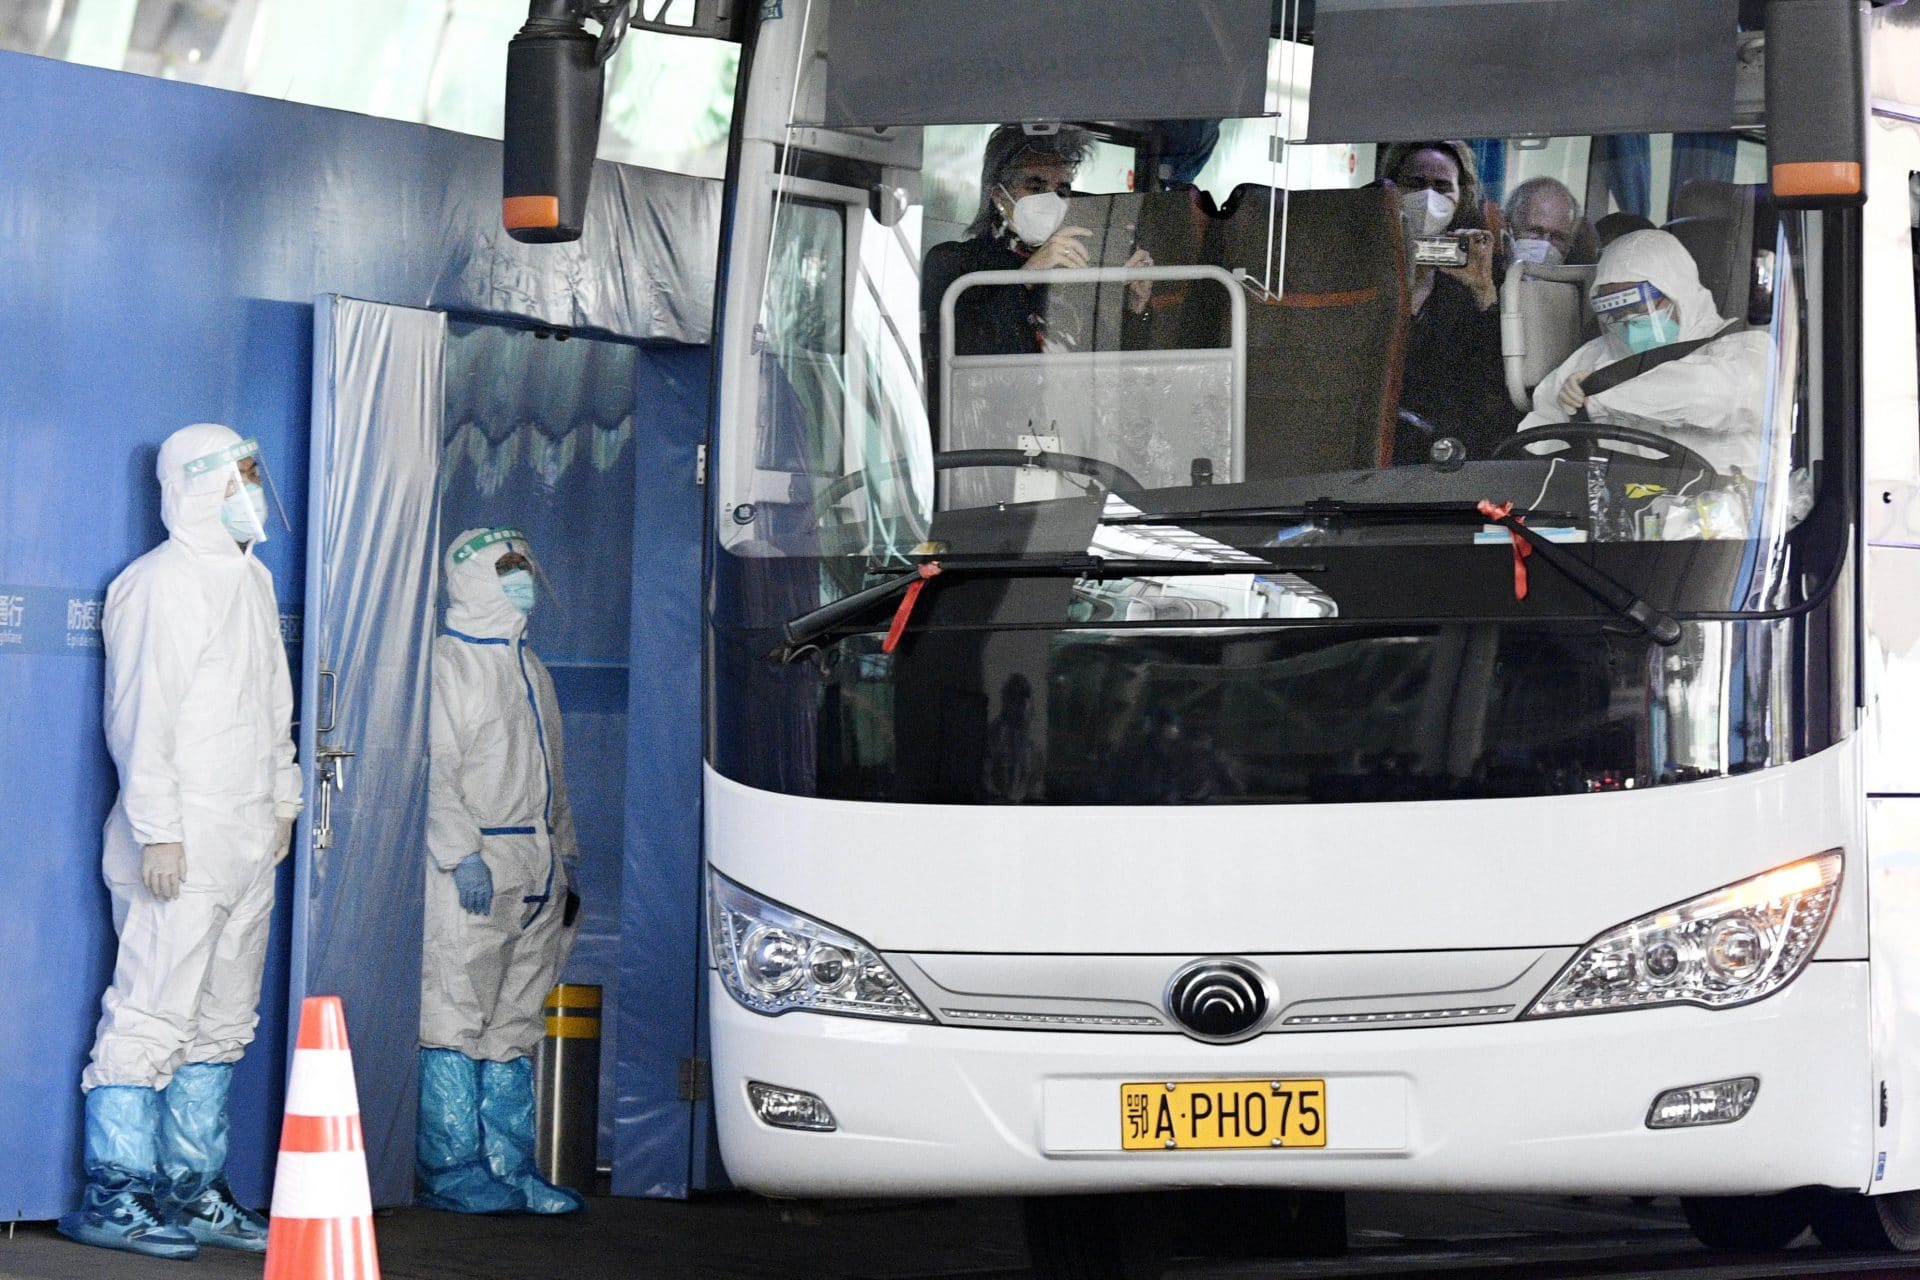 A bus carrying a team of experts from the World Health Organization departs an airport in Wuhan on Jan. 14, 2021, after arriving in the Chines